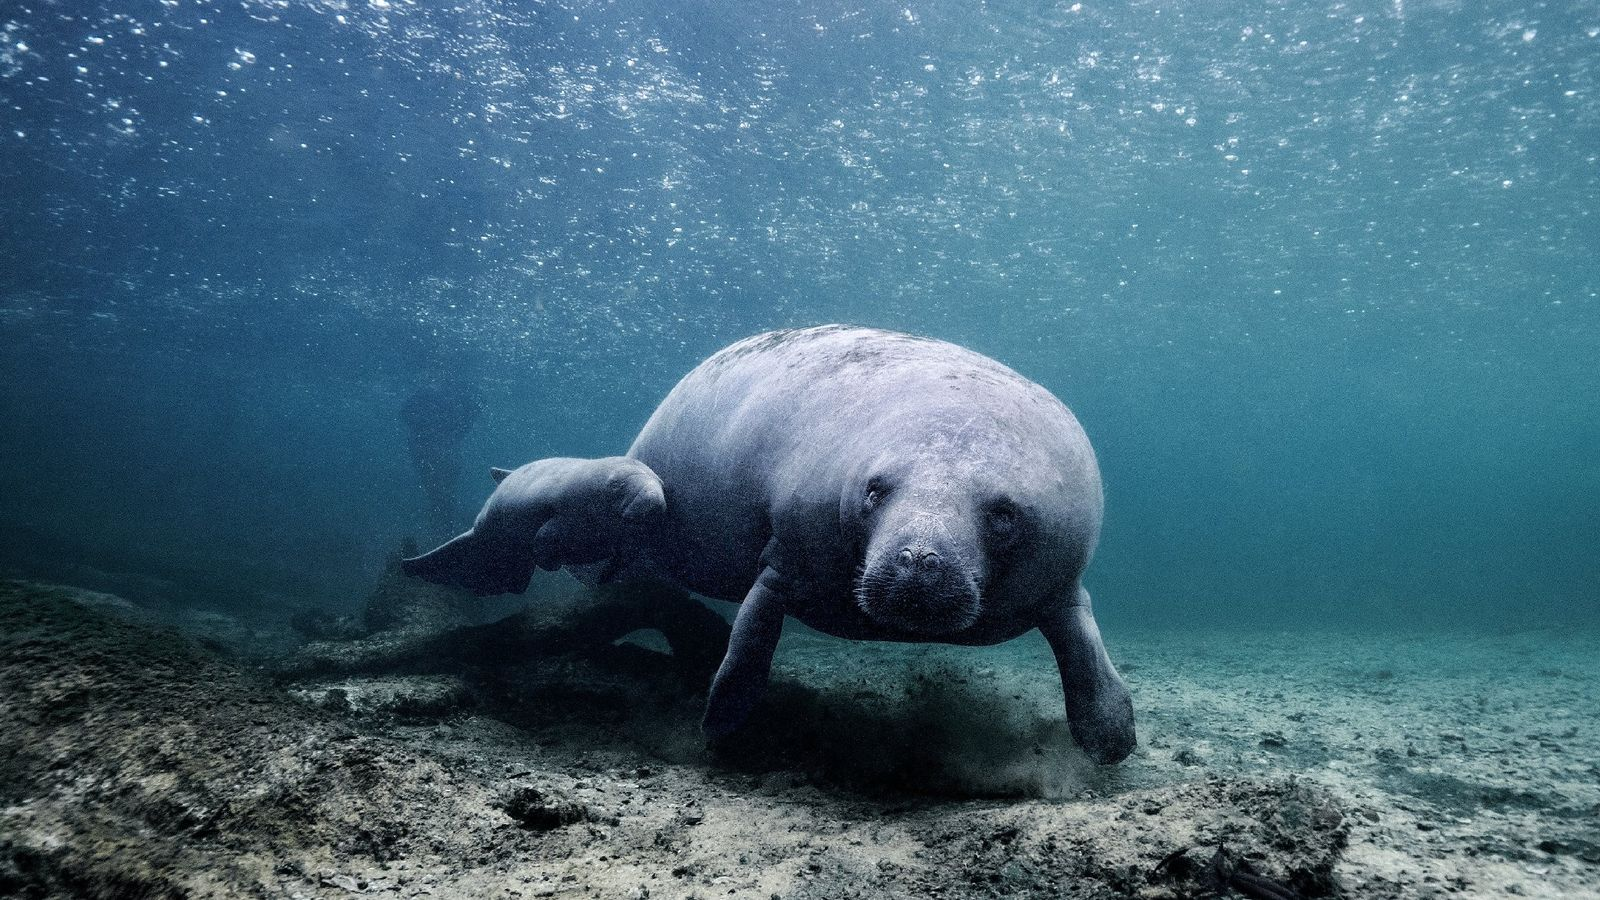 """""""Thousands of rain drops on the surface, the cutest little baby manatee swimming just below,"""" writes ..."""